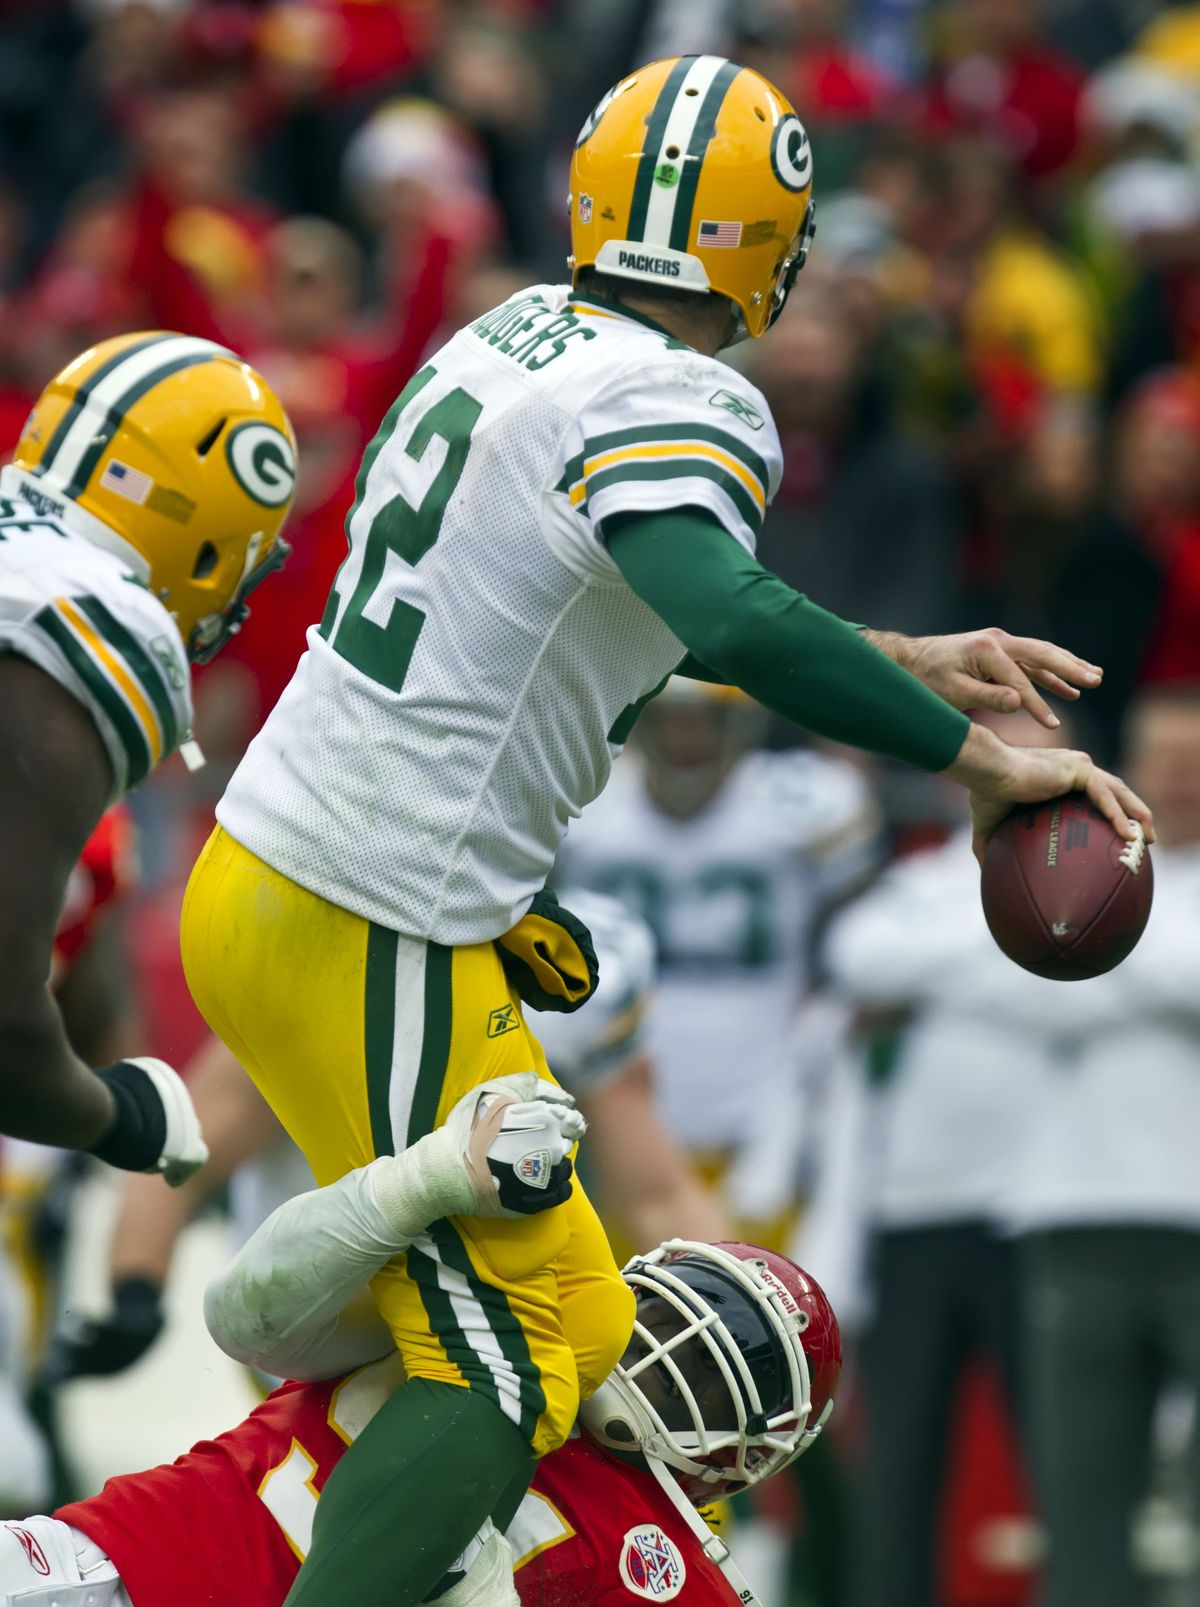 Packers at Chiefs